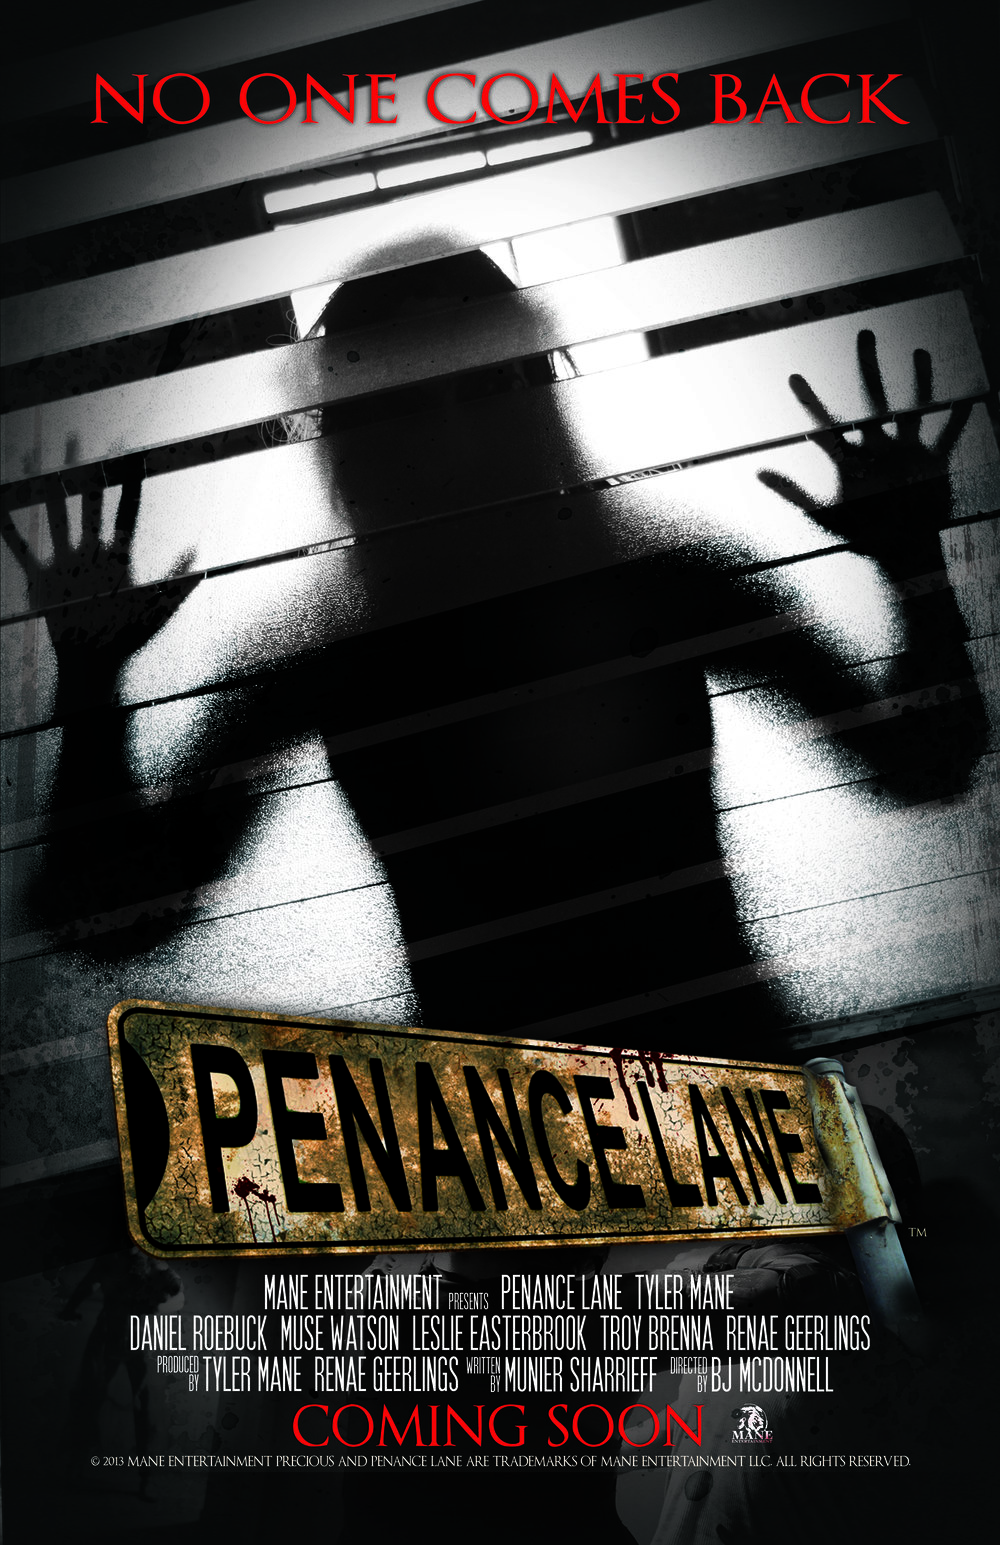 Movie Poster Concepts - Penance Lane